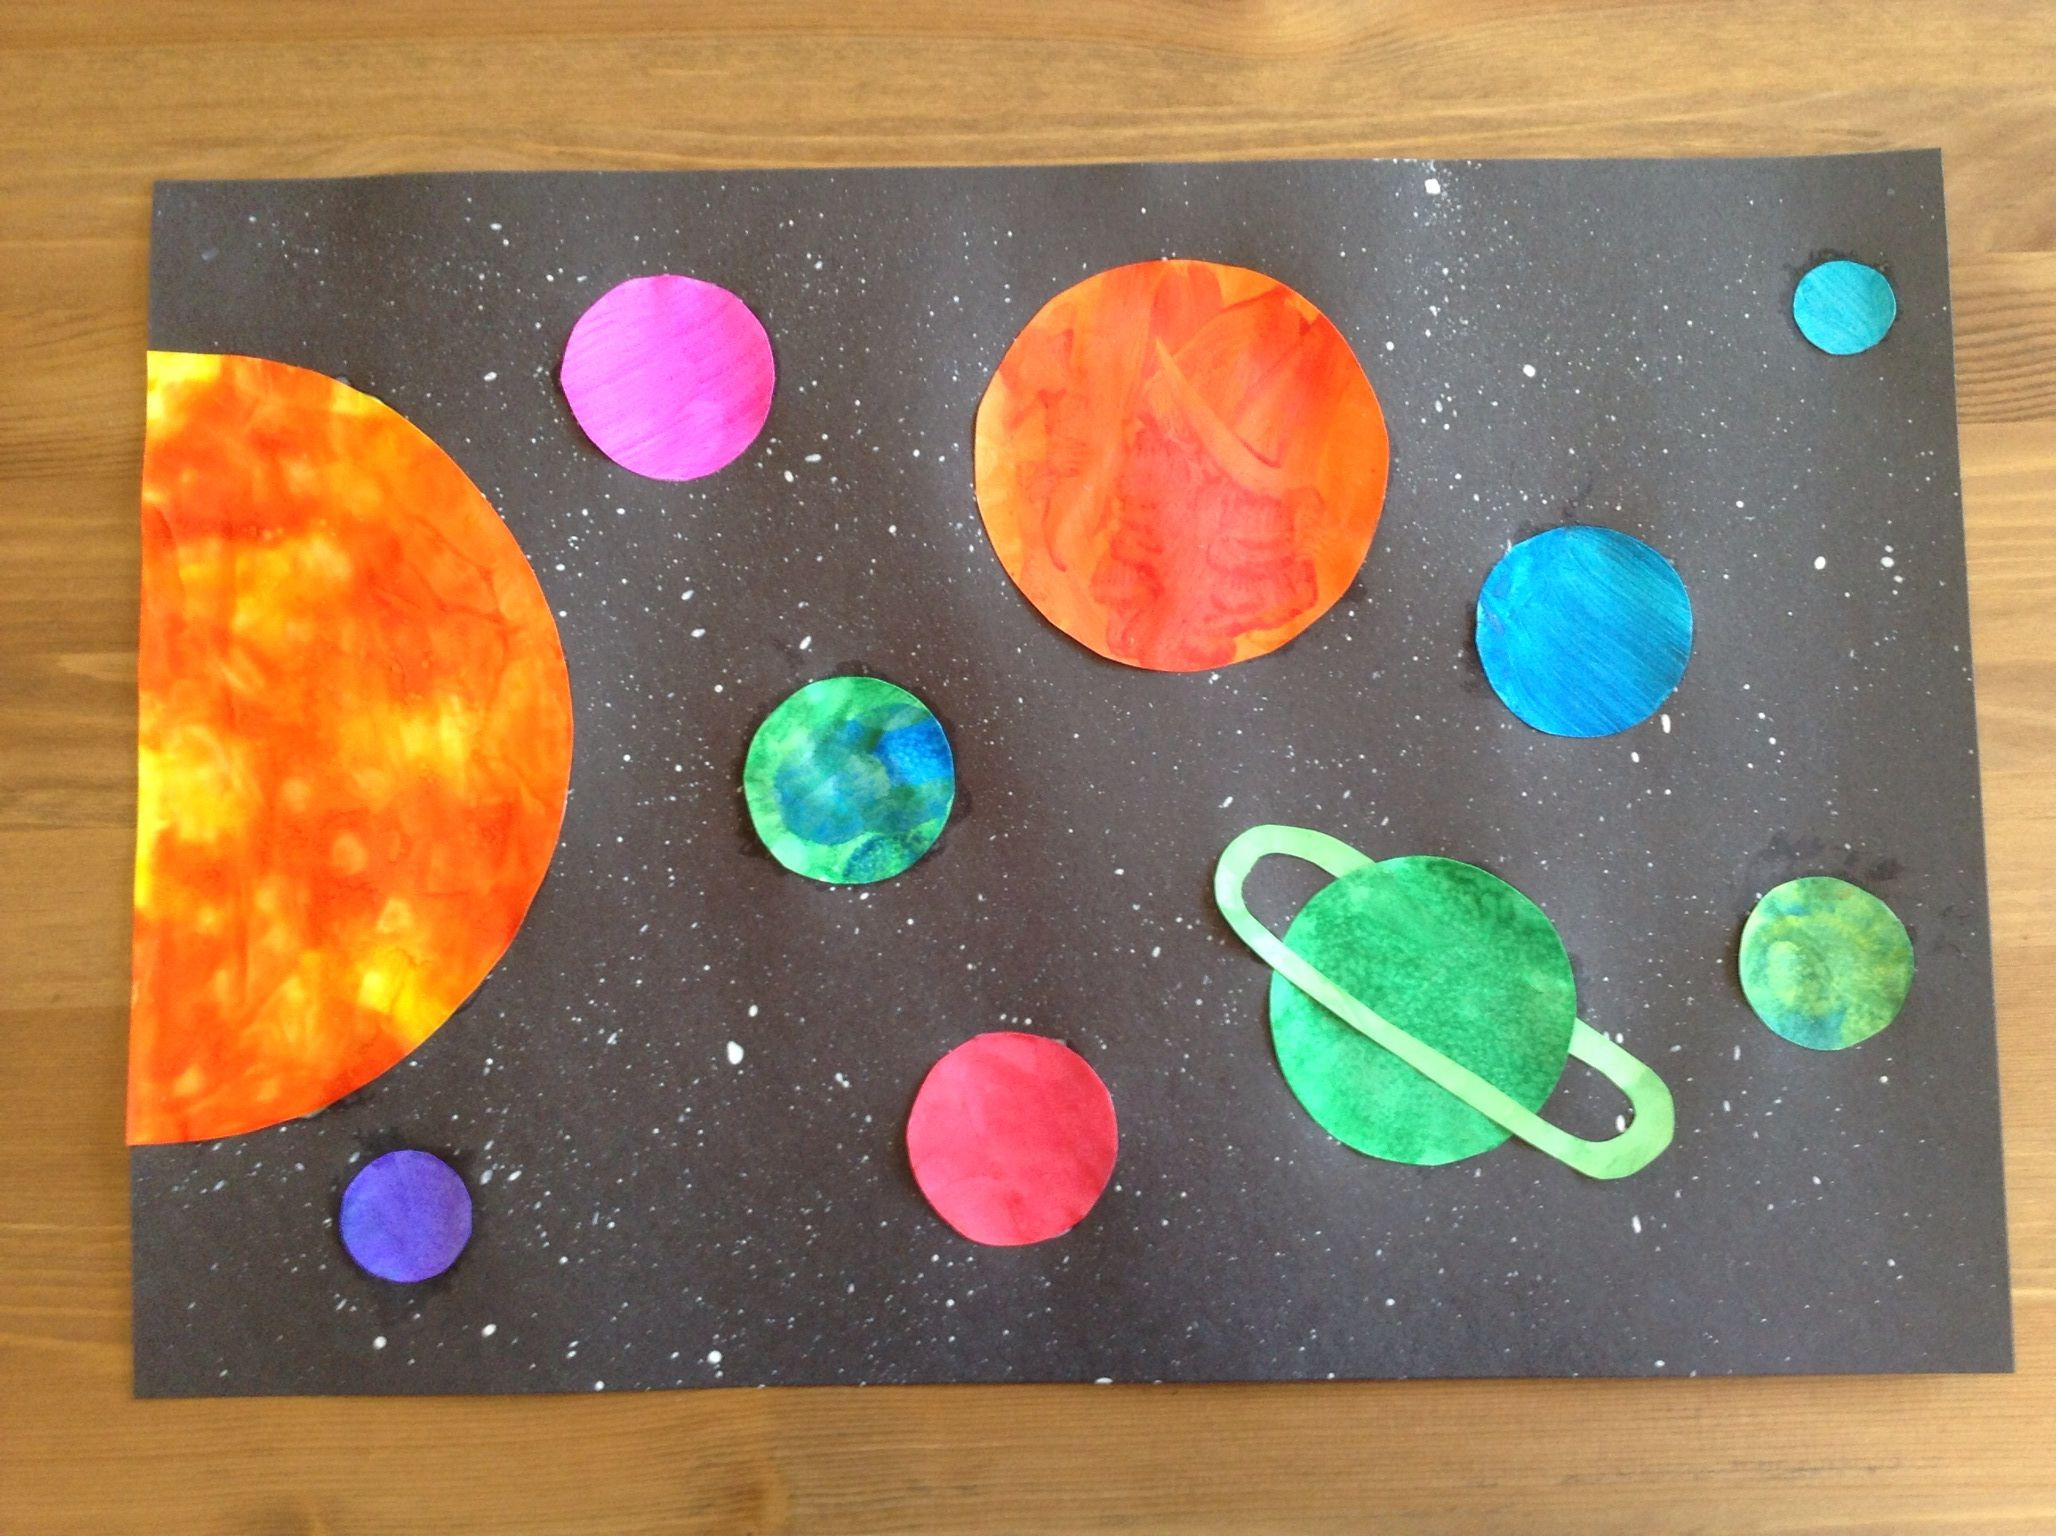 essay on solar system for kids nasa s holy grail solar system that  solar system craft preschool craft space craft kids craft solar system craft preschool craft space craft